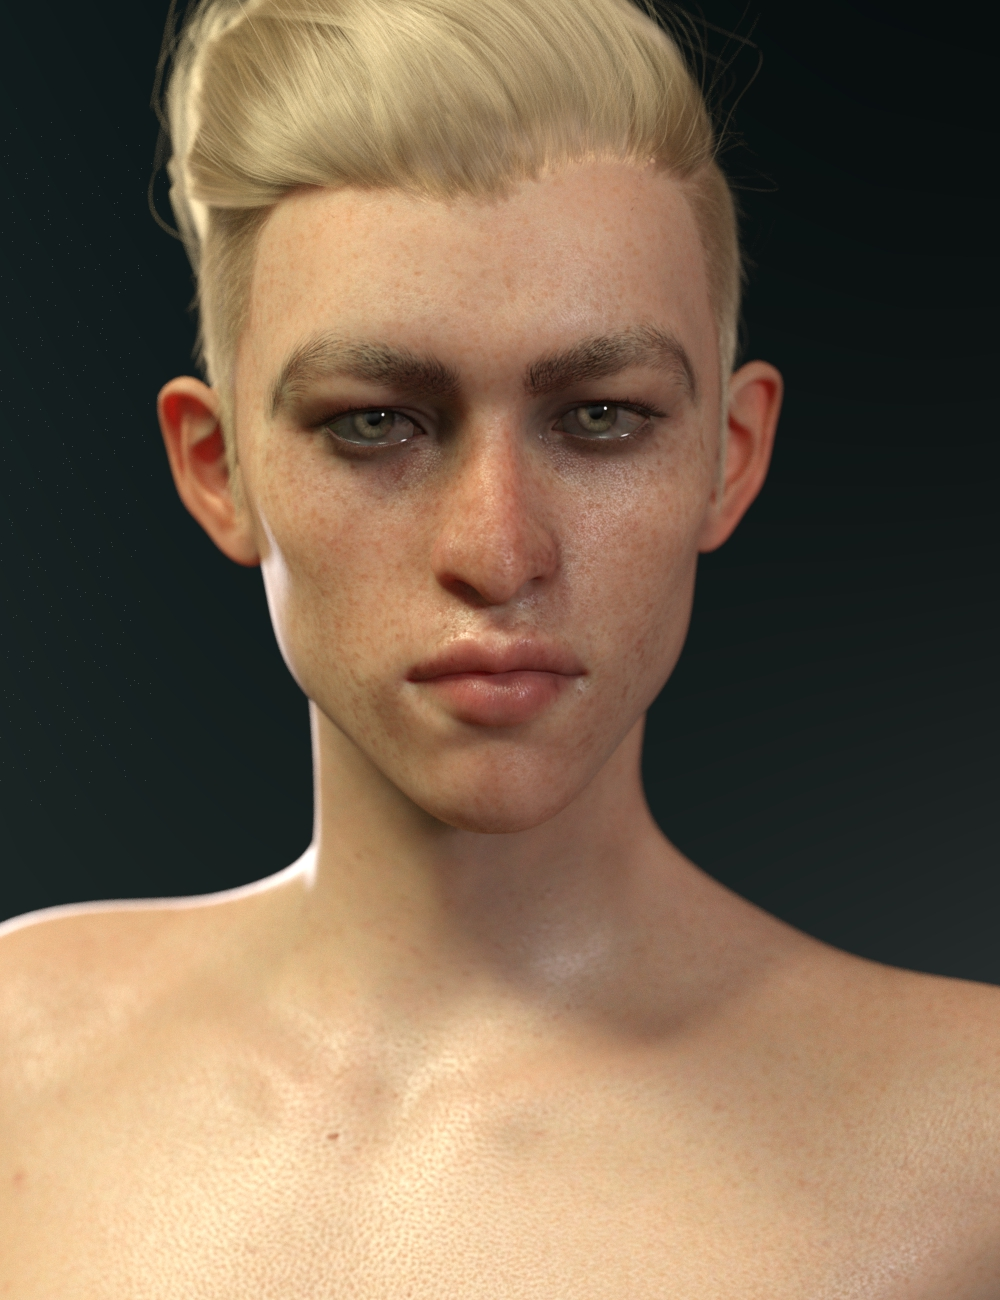 Fiore for Genesis 8 Male by: Saiyaness, 3D Models by Daz 3D